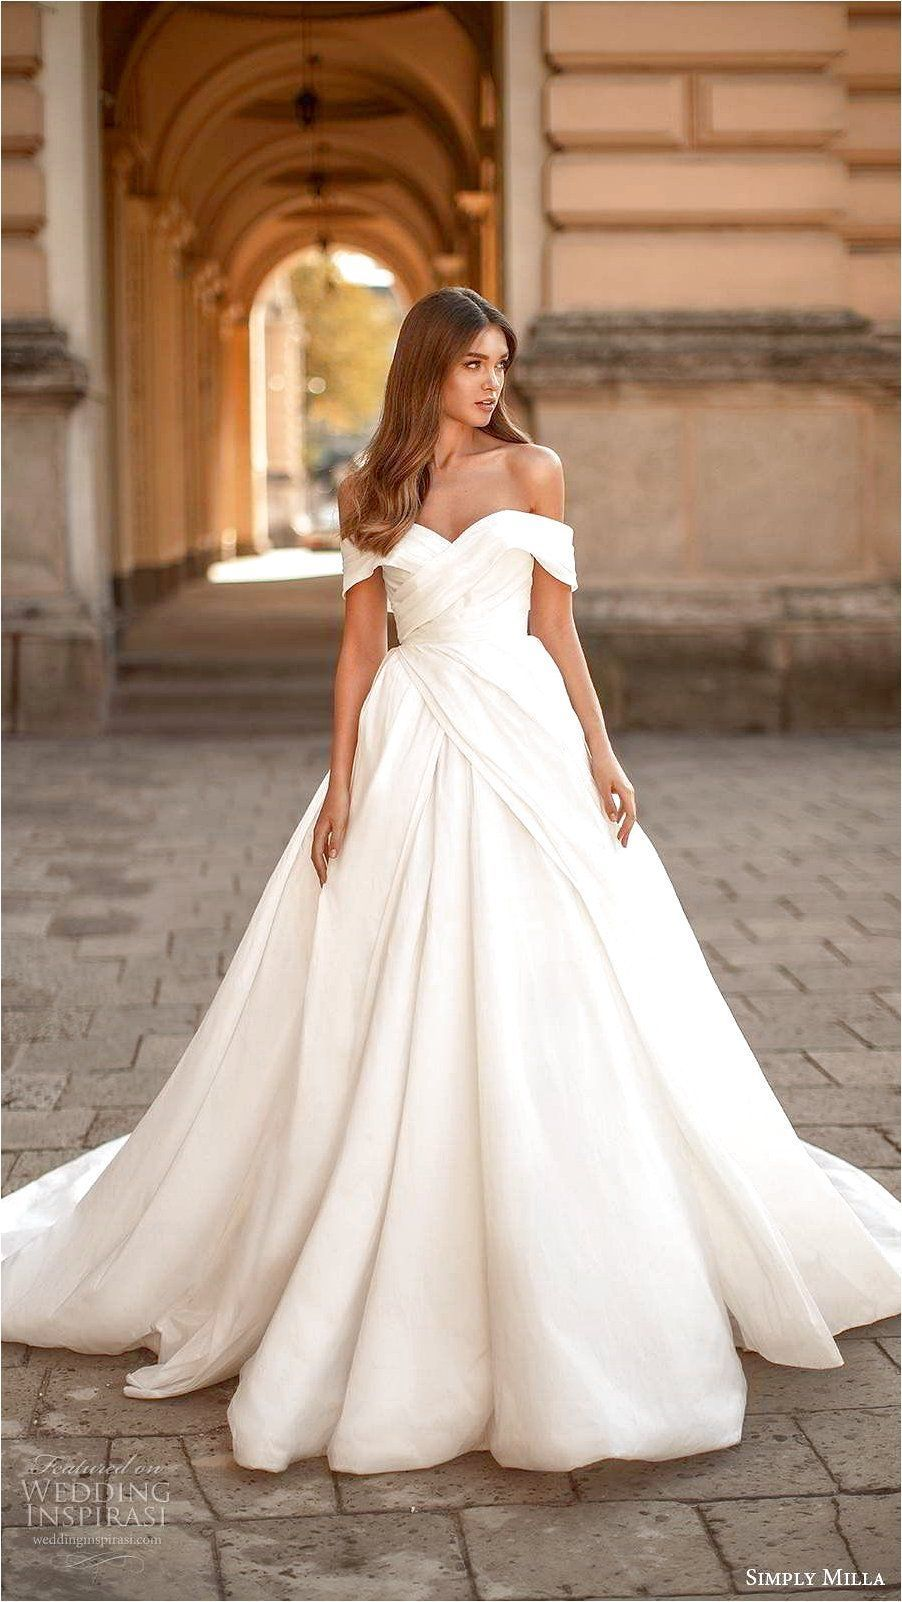 Top 100 Wedding Dresses From Etsy In 2020 Ball Gowns Wedding Wedding Dresses Lace Wedding Dresses